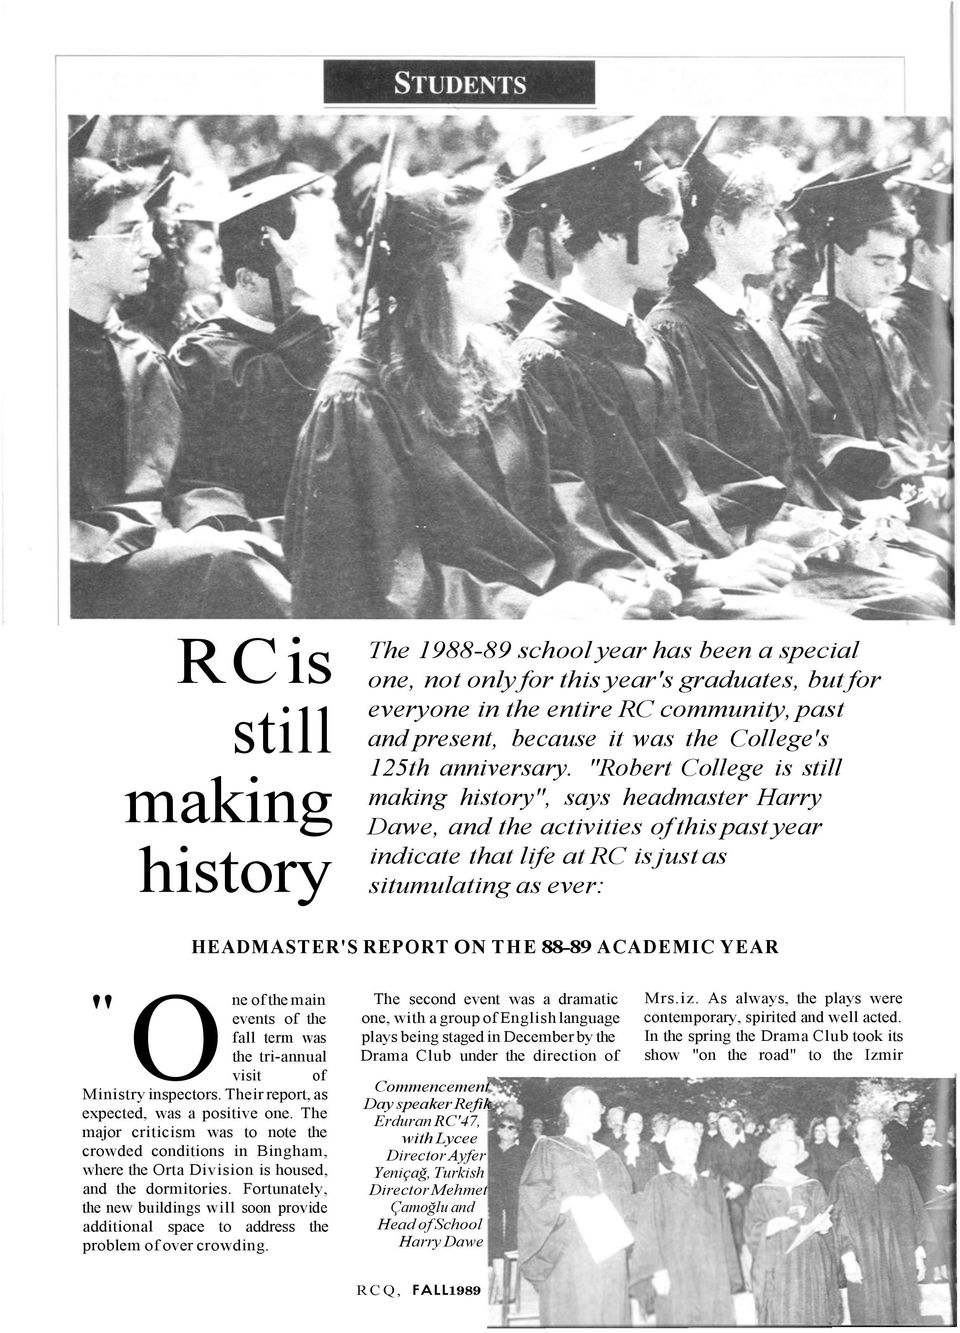 """Robert College is still making history"", says headmaster Harry Dawe, and the activities of this past year indicate that life at RC is just as situmulating as ever: HEADMASTER'S REPORT ON THE 88-89"